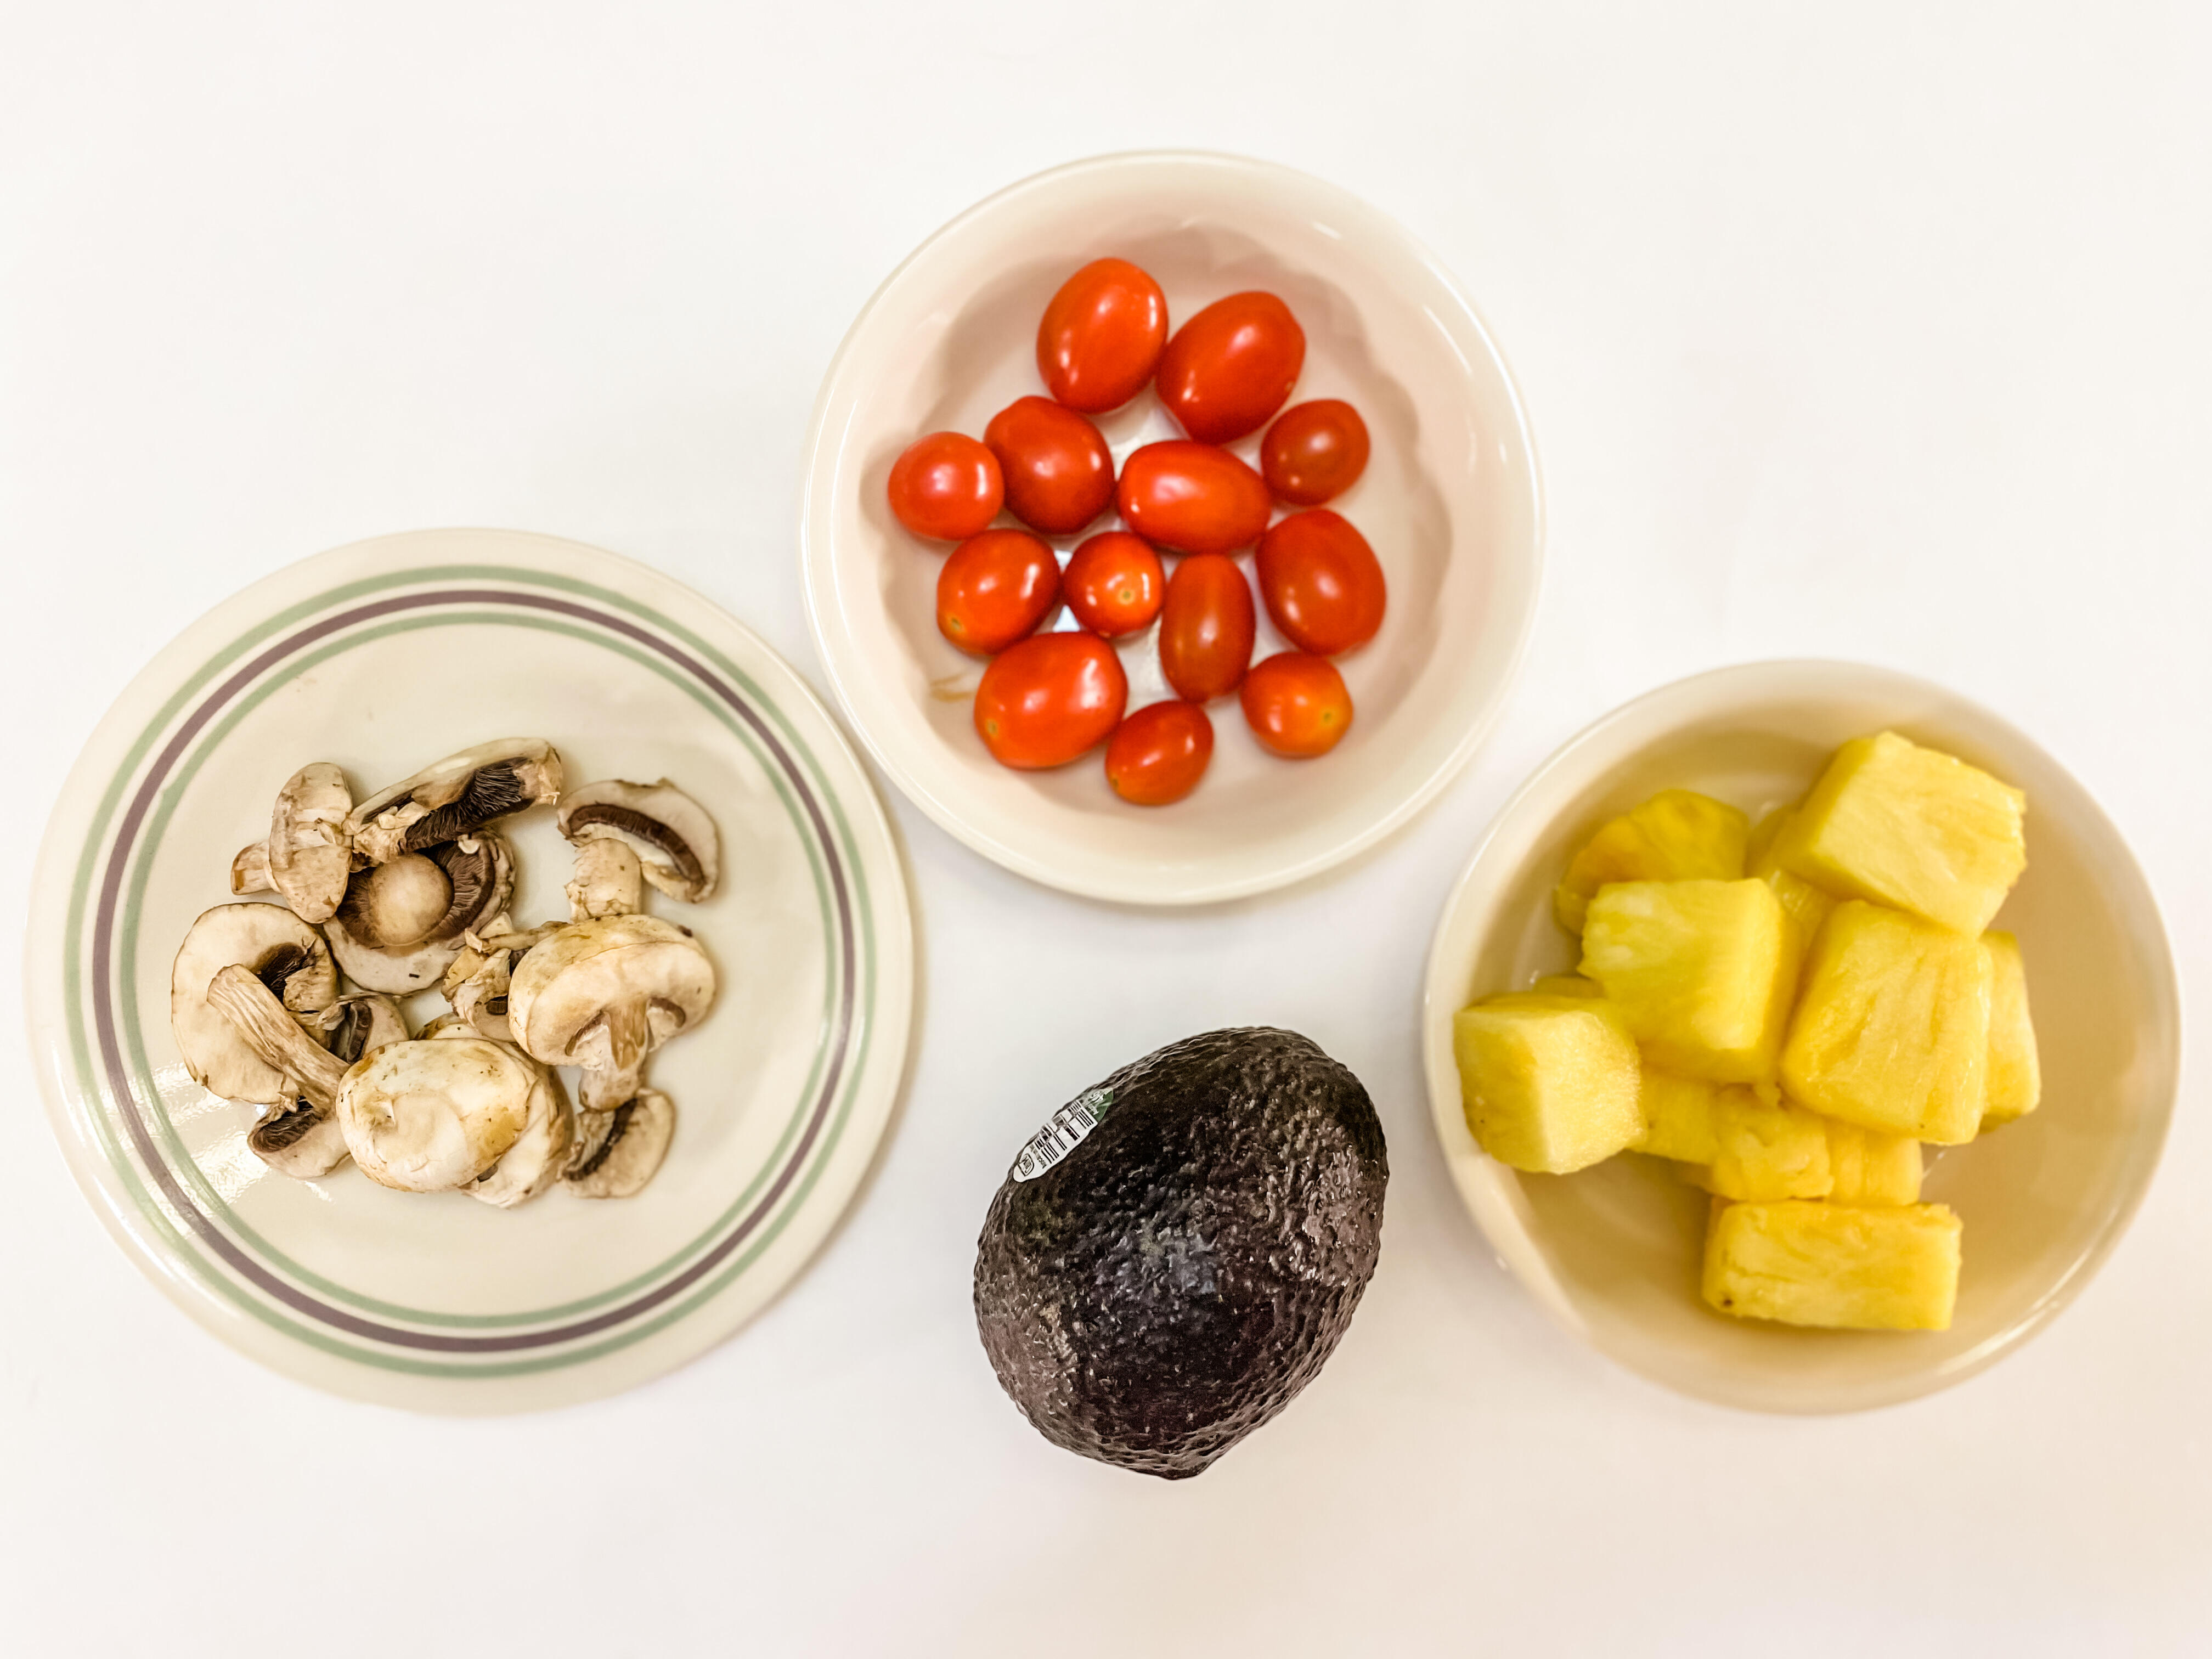 5 servings of produce: half a cup of mushrooms, half a cup of cherry tomatoes, a cup of pineapple, an avocado